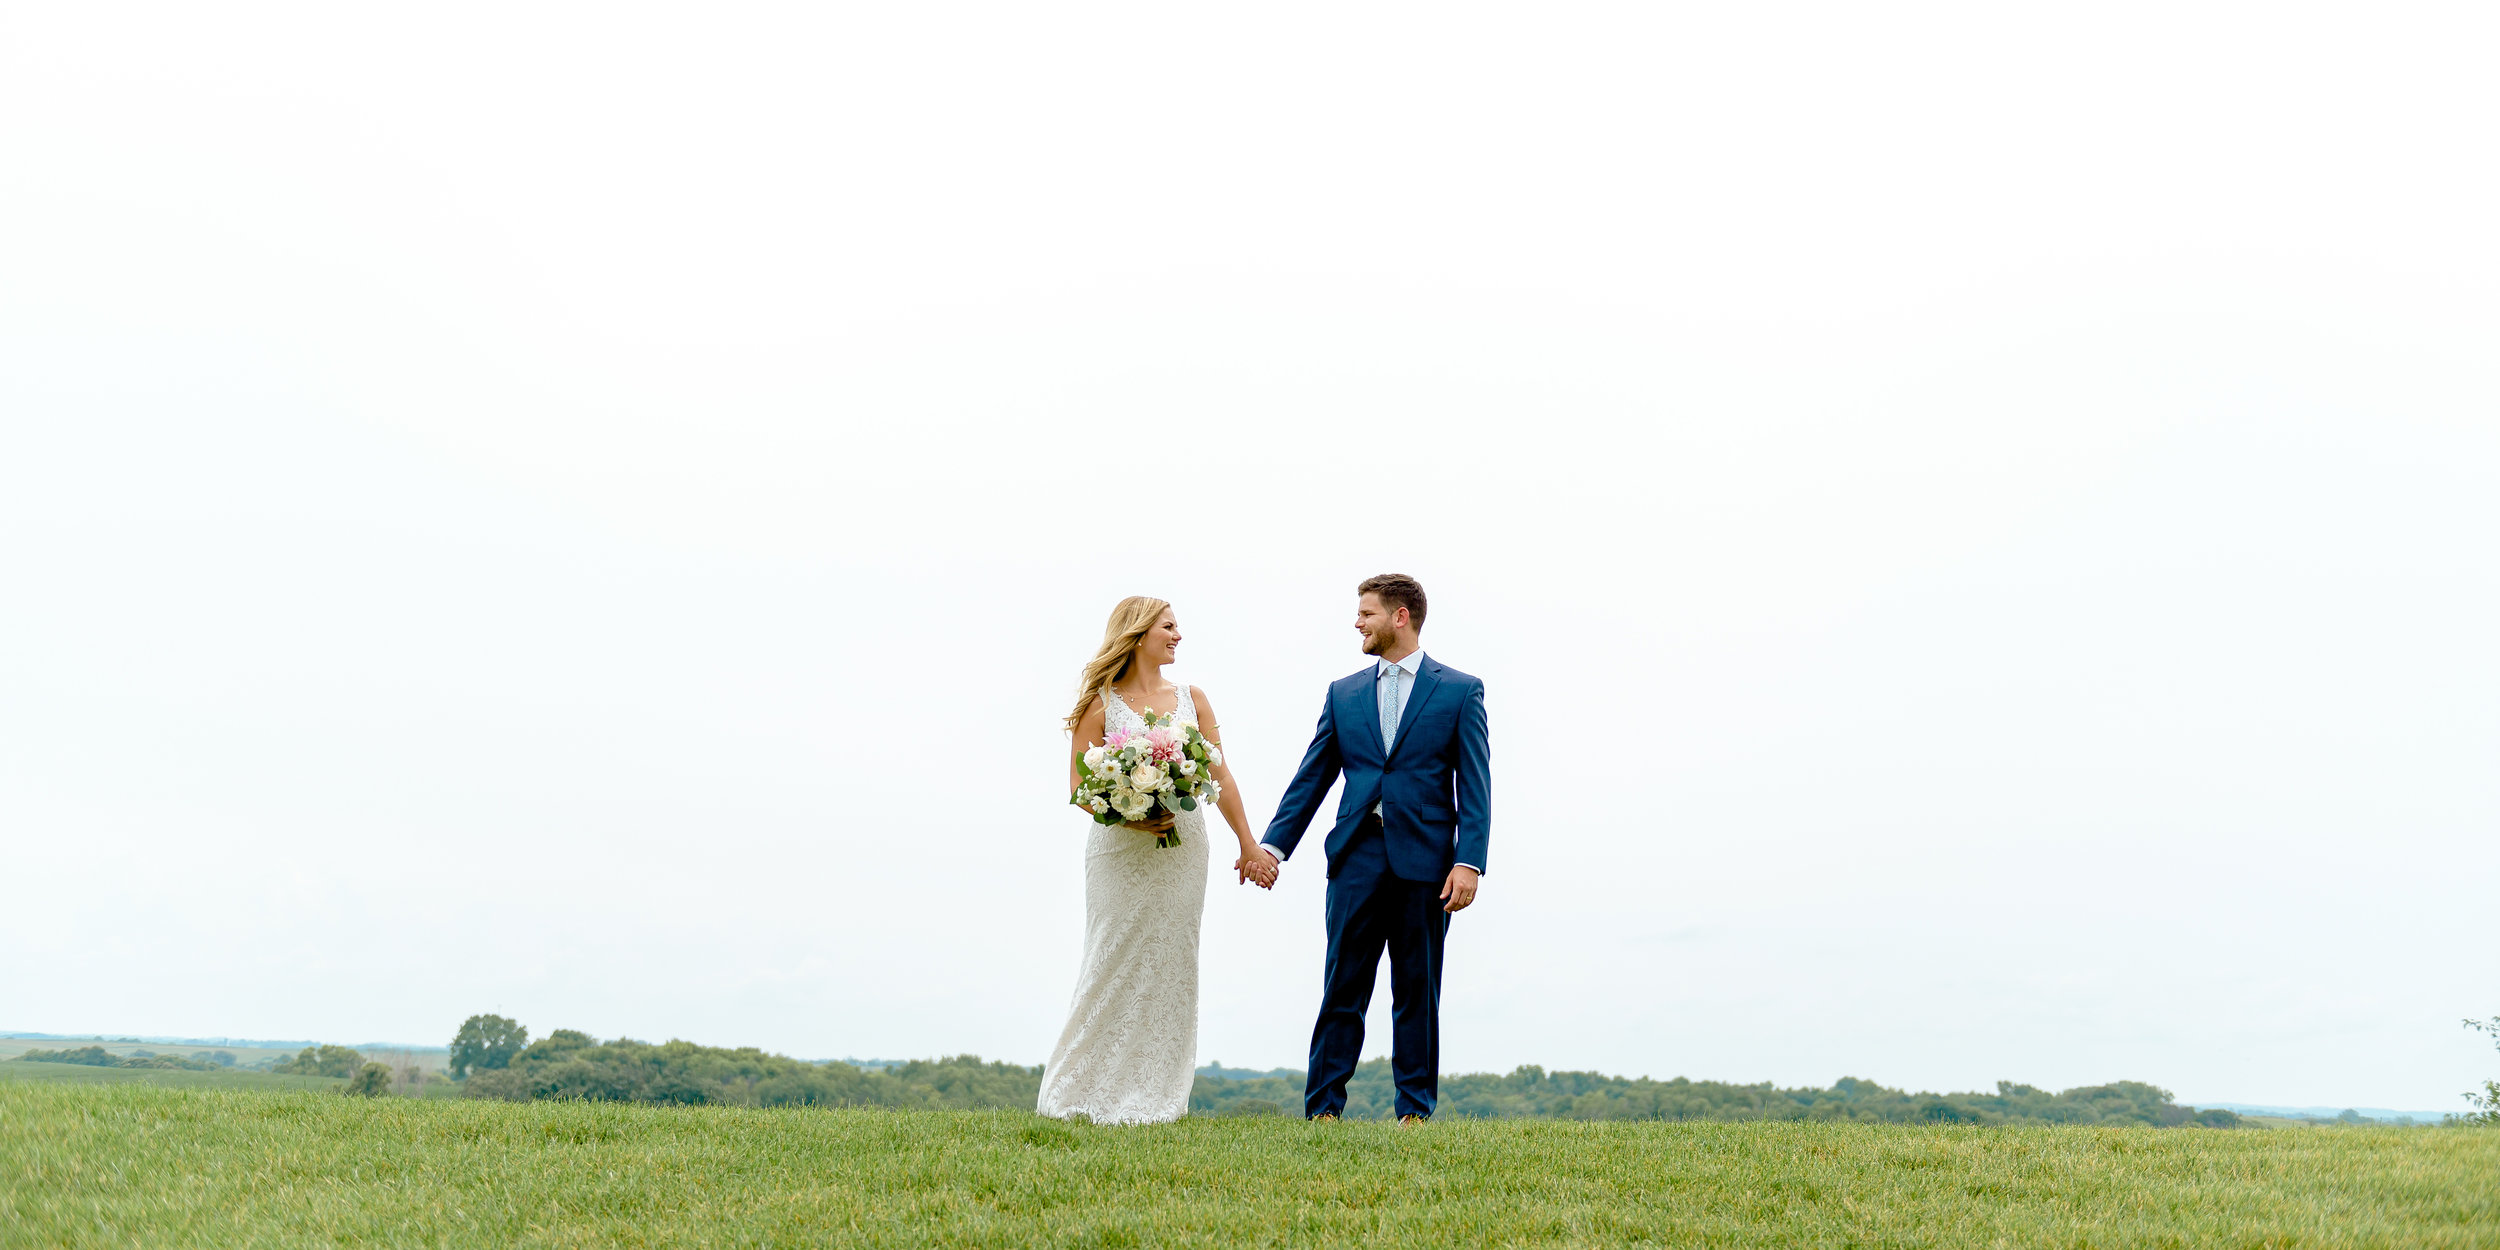 Ashley + Justin - Wedding Album_09.jpg